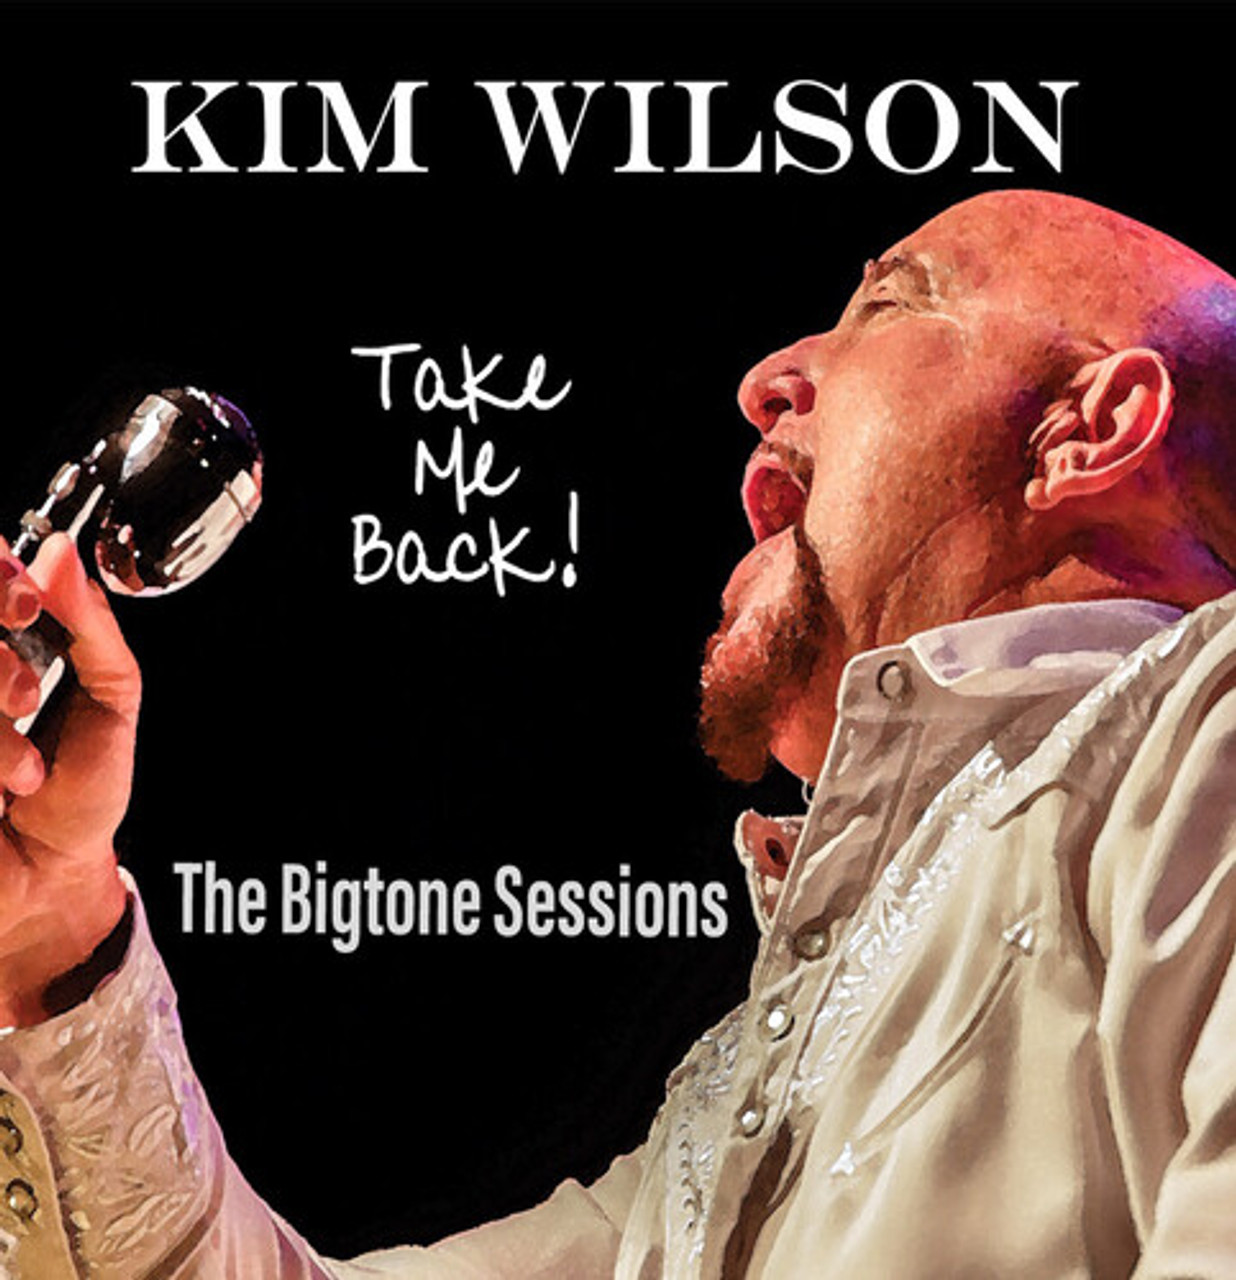 KIM WILSON - TAKE ME BACK - SHIPS ON RELEASE DATE OF 10/09/2020 -